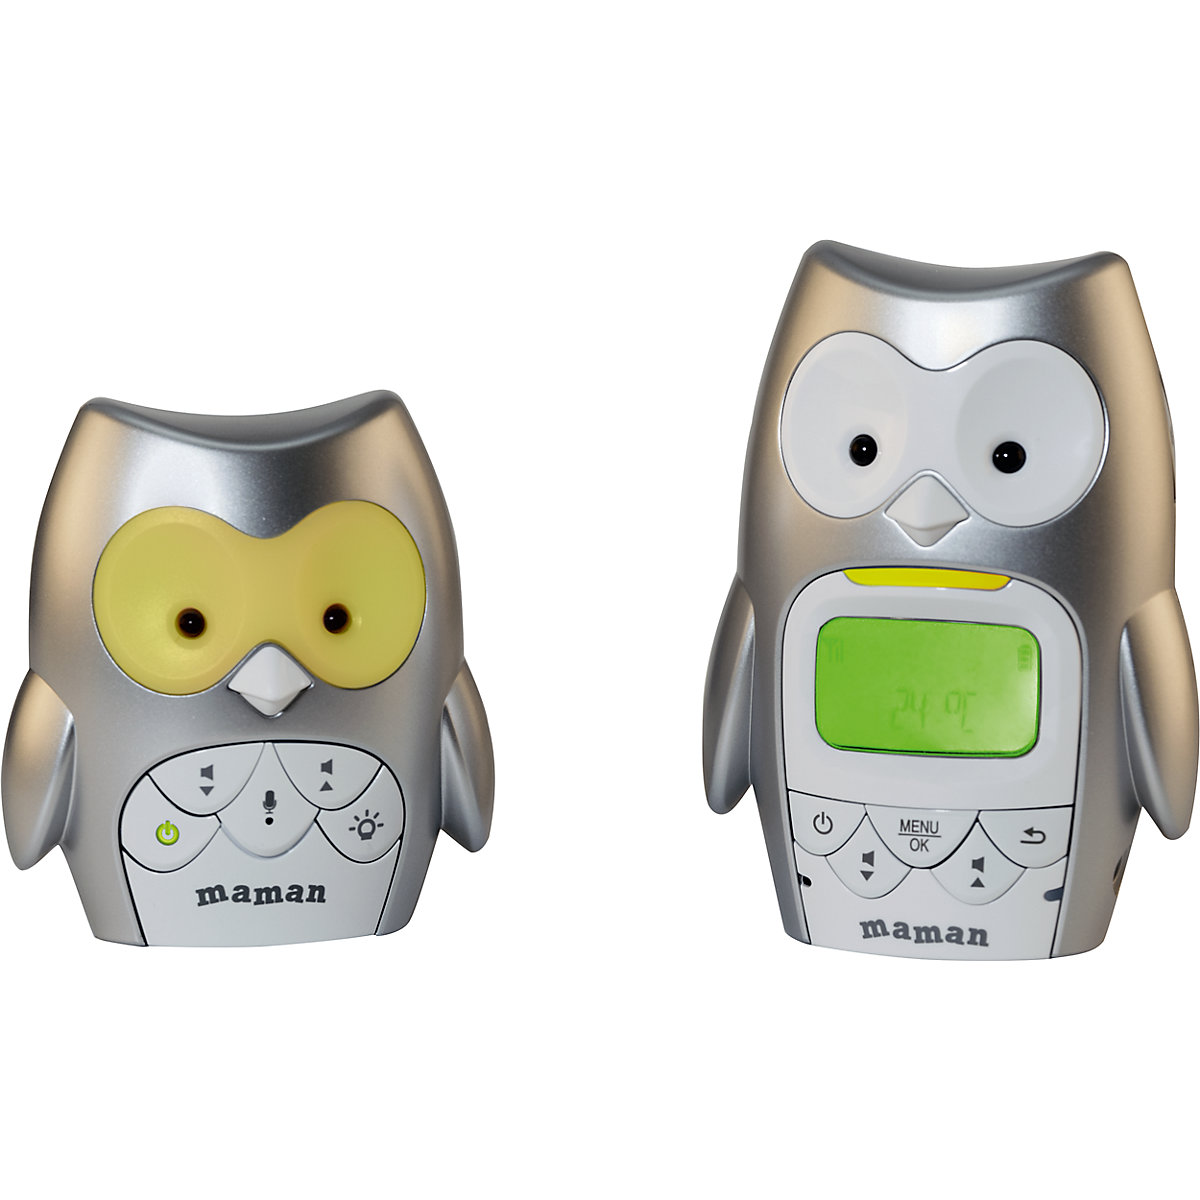 Baby Sleeping Monitors MAMAN 7142169 Safety baby monitor control for children baby monitor switel bcc38